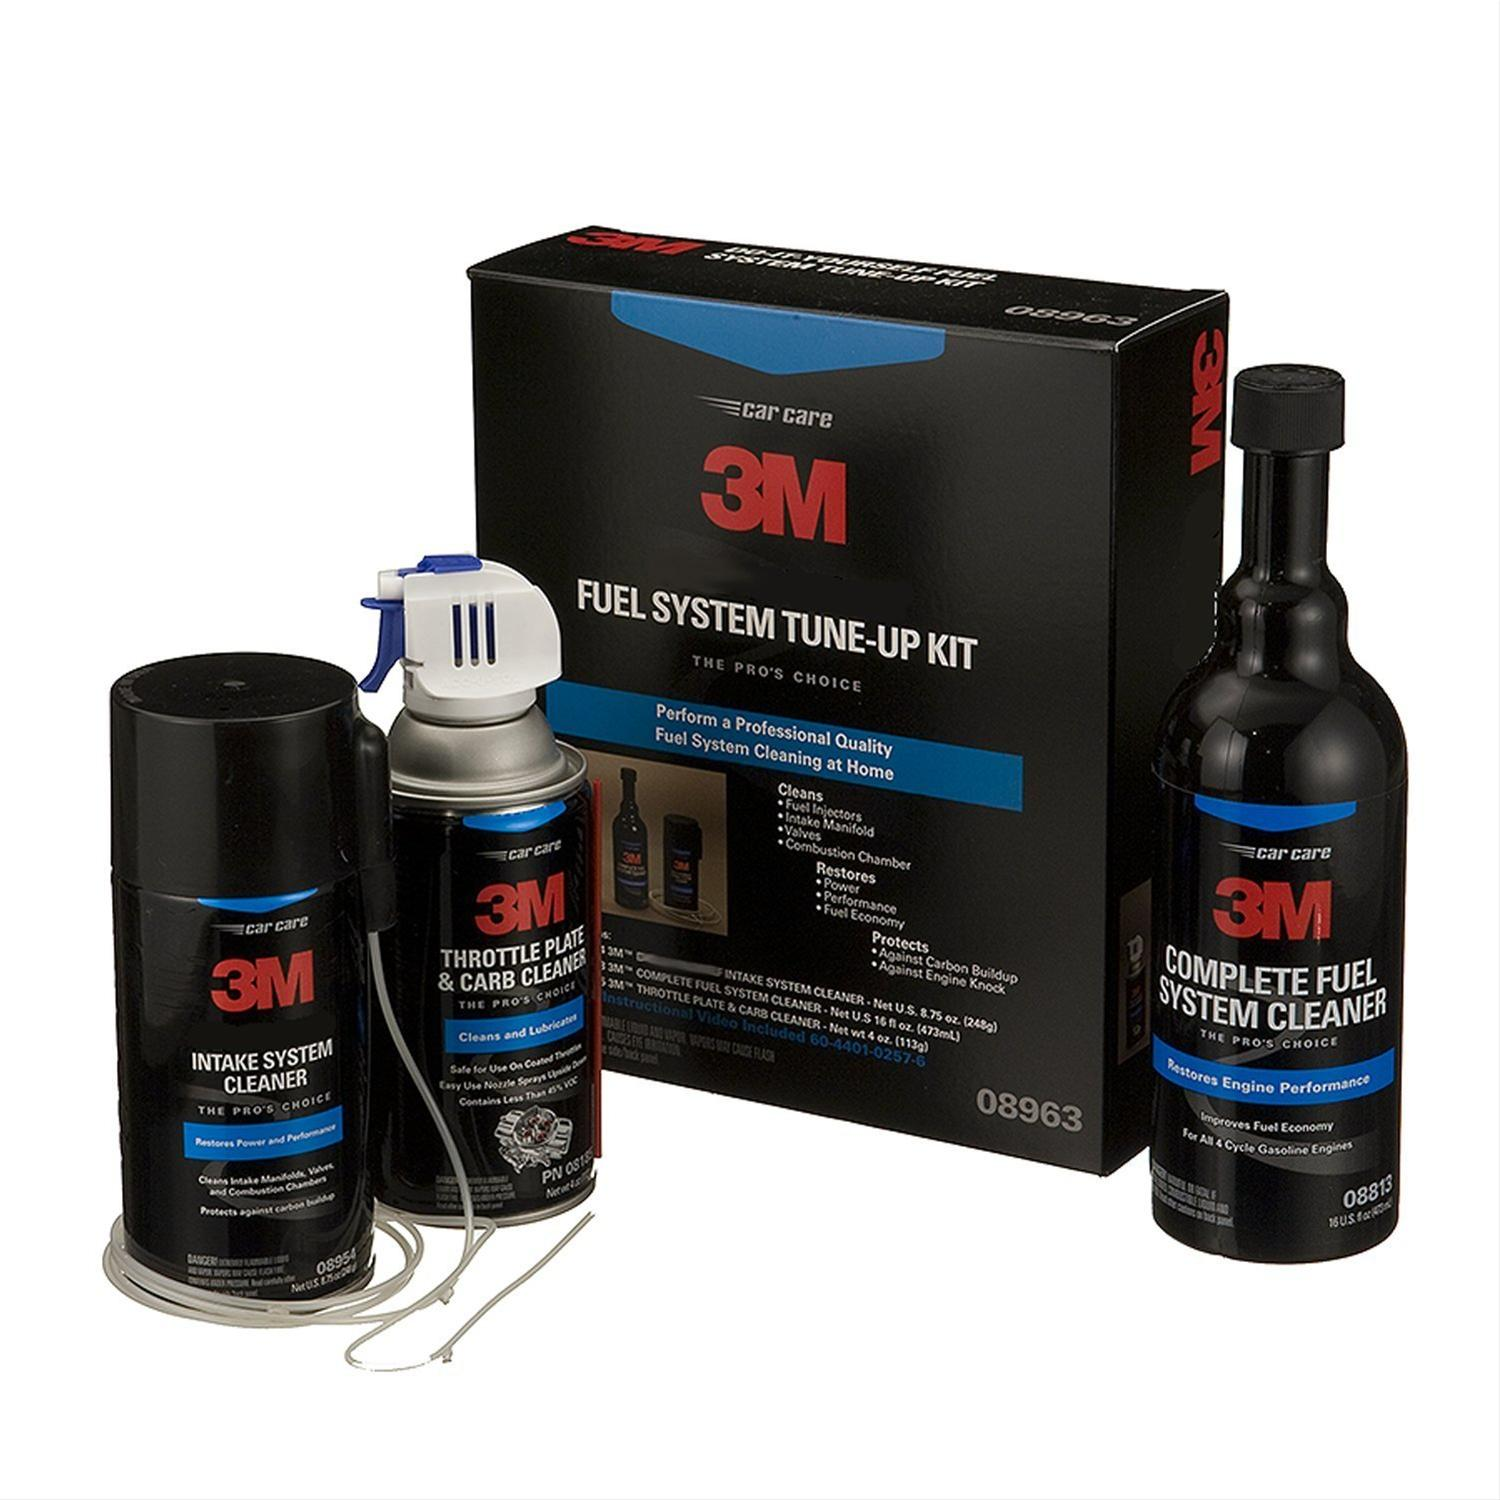 3M Fuel System Tune Up Kits 8963 Free Shipping on Orders Over $99